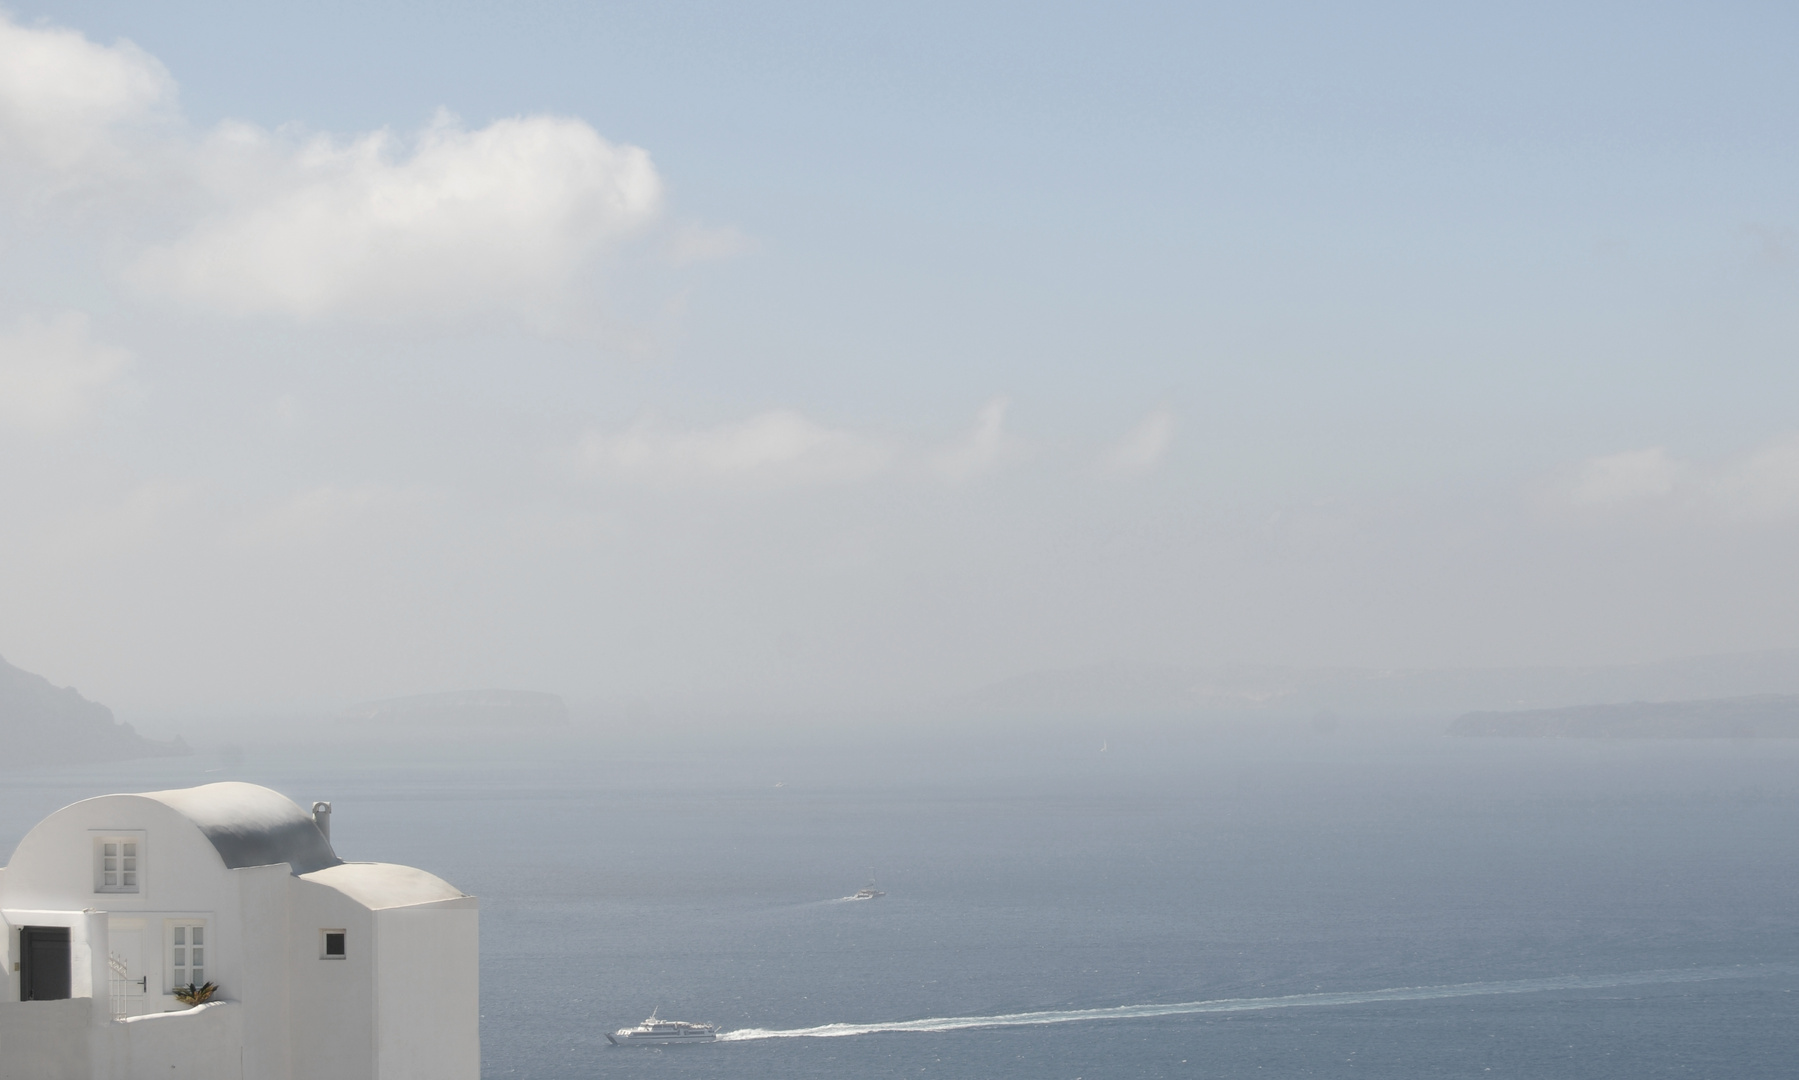 Cyclades view #4